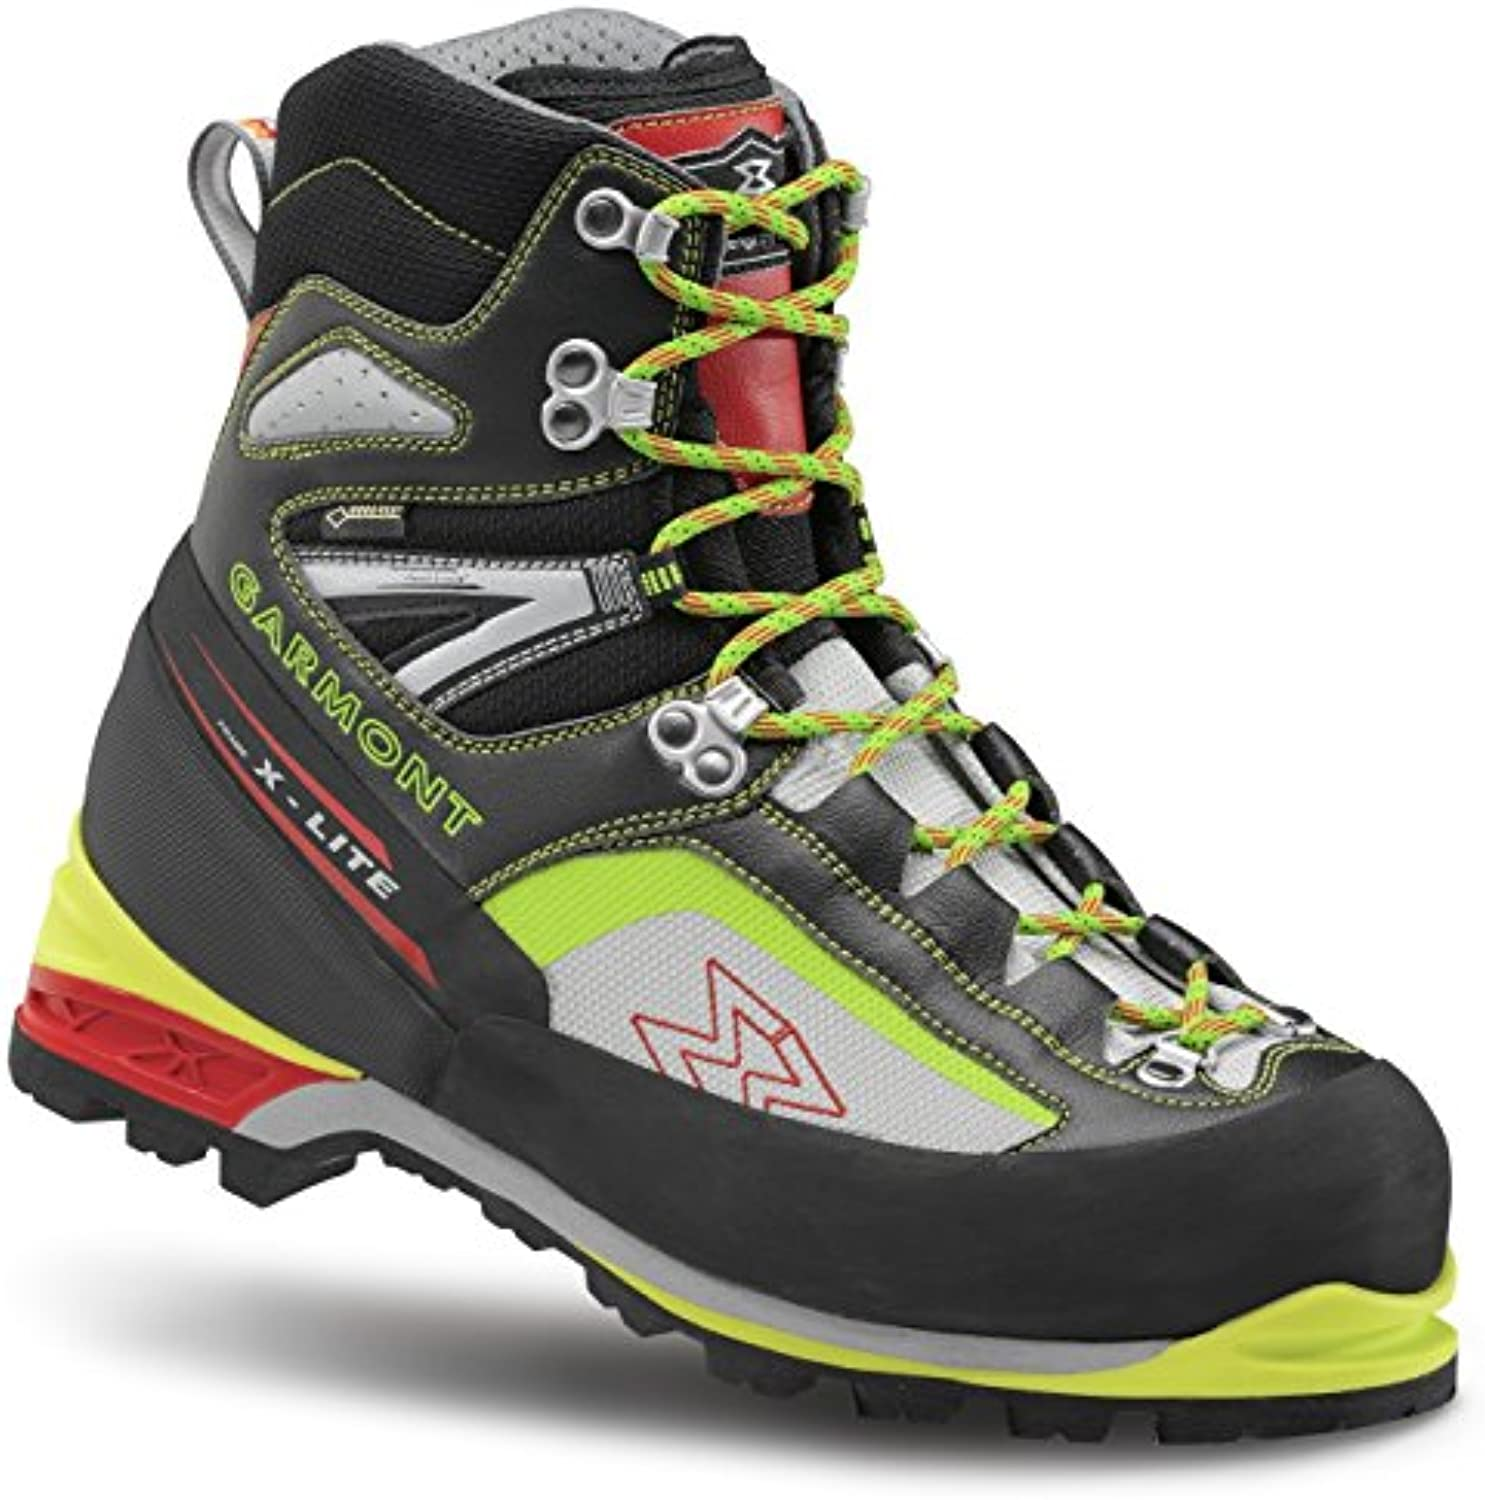 Garmont Icon Plus GTX Mountaineer Boots Men Black/Acid Green Größe UK 11 | EU 46 2018 Schuhe